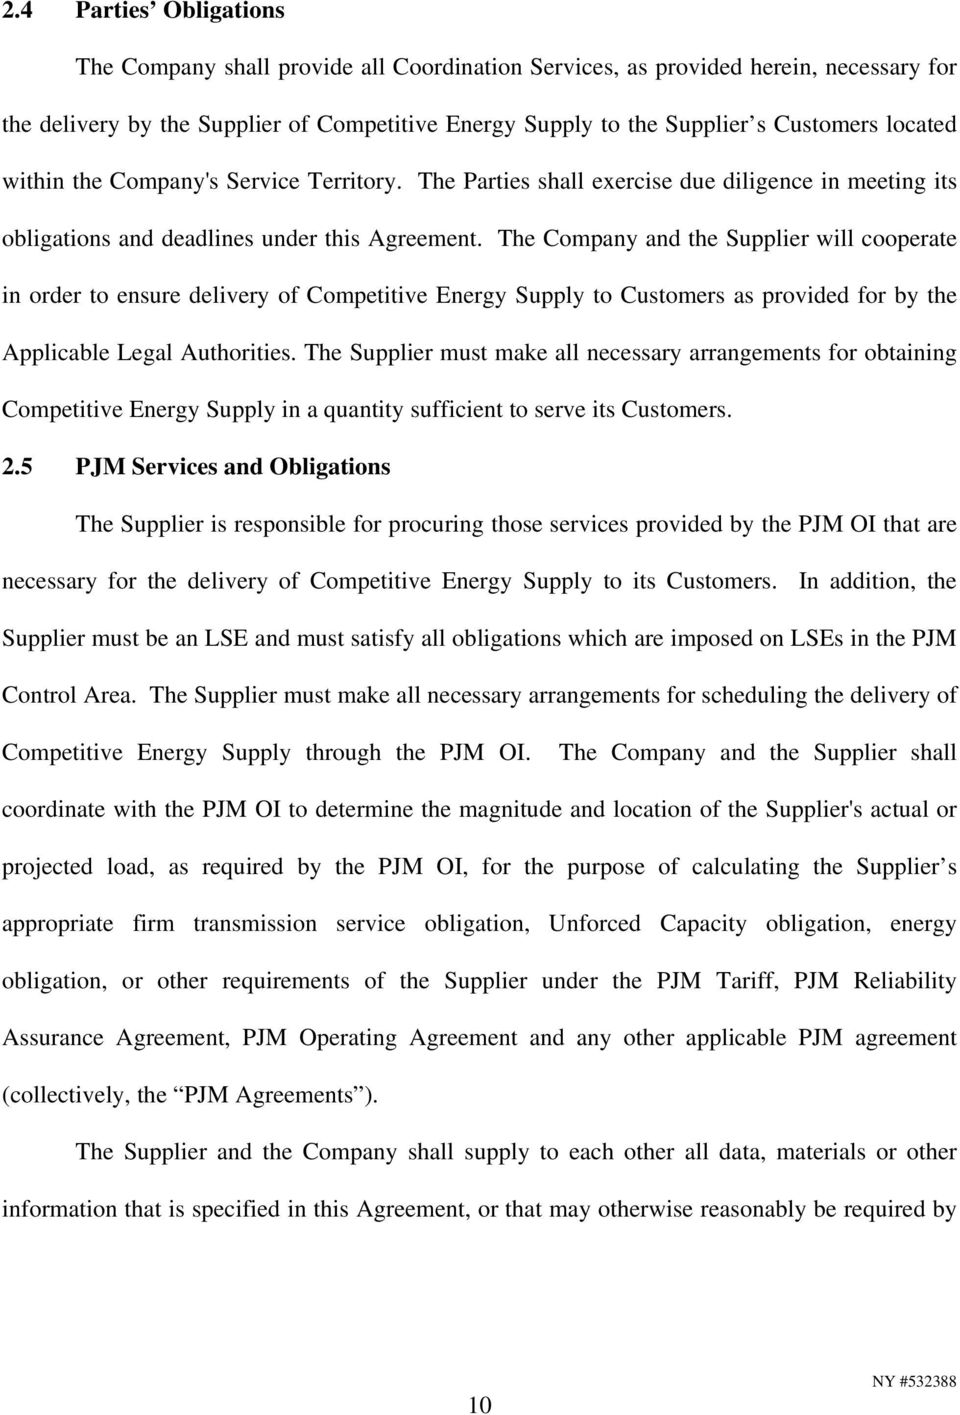 The Company and the Supplier will cooperate in order to ensure delivery of Competitive Energy Supply to Customers as provided for by the Applicable Legal Authorities.